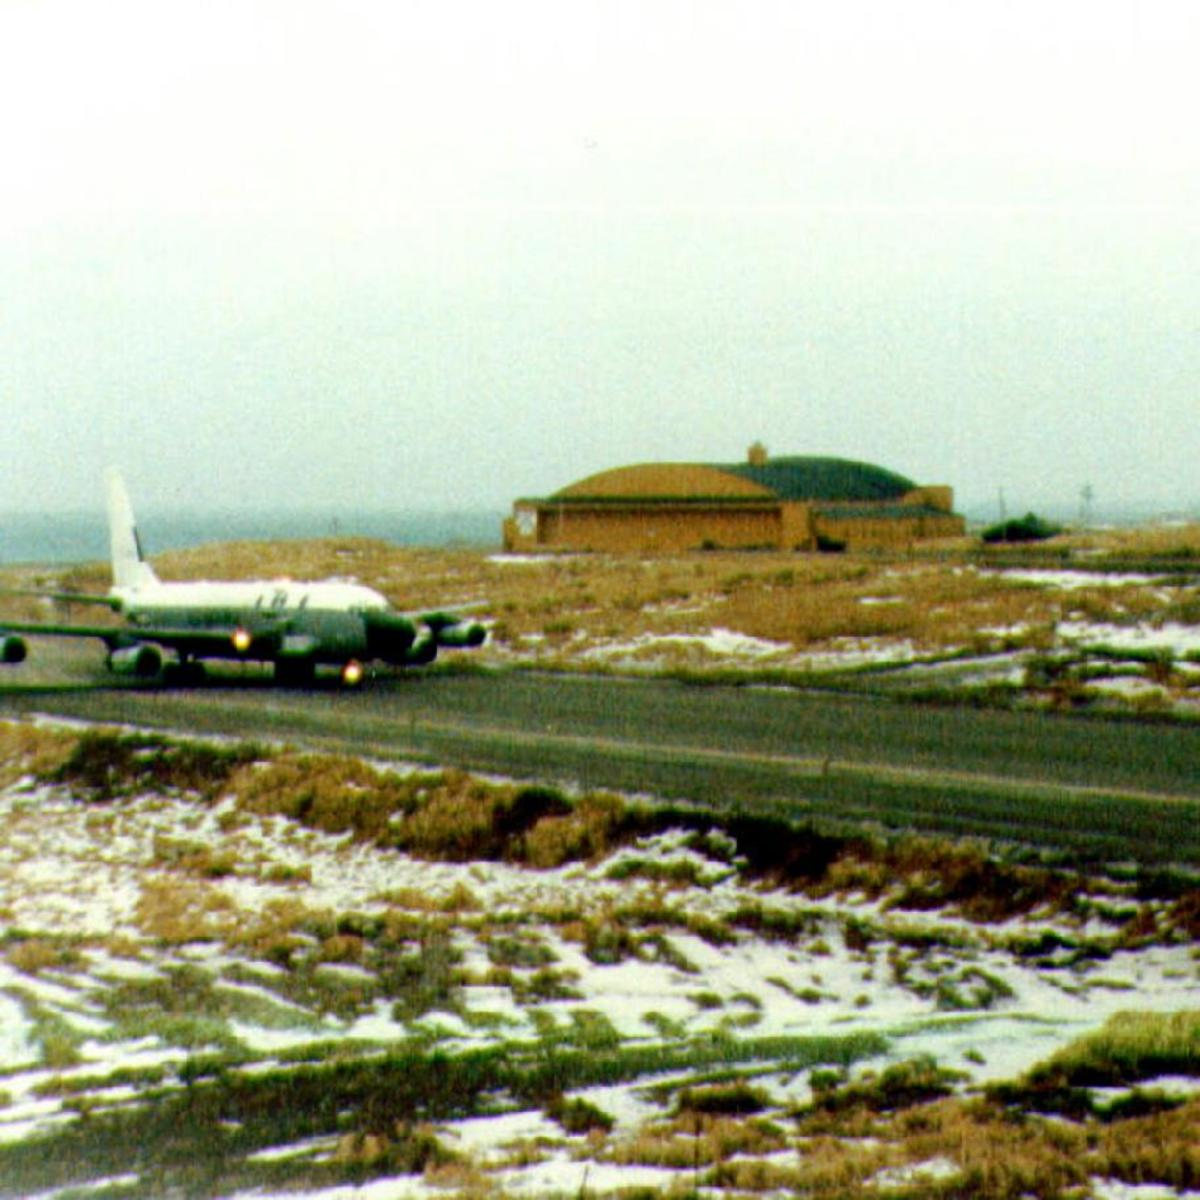 RC-135S Cobra Ball on the ramp at Shemya AFB, Alaska